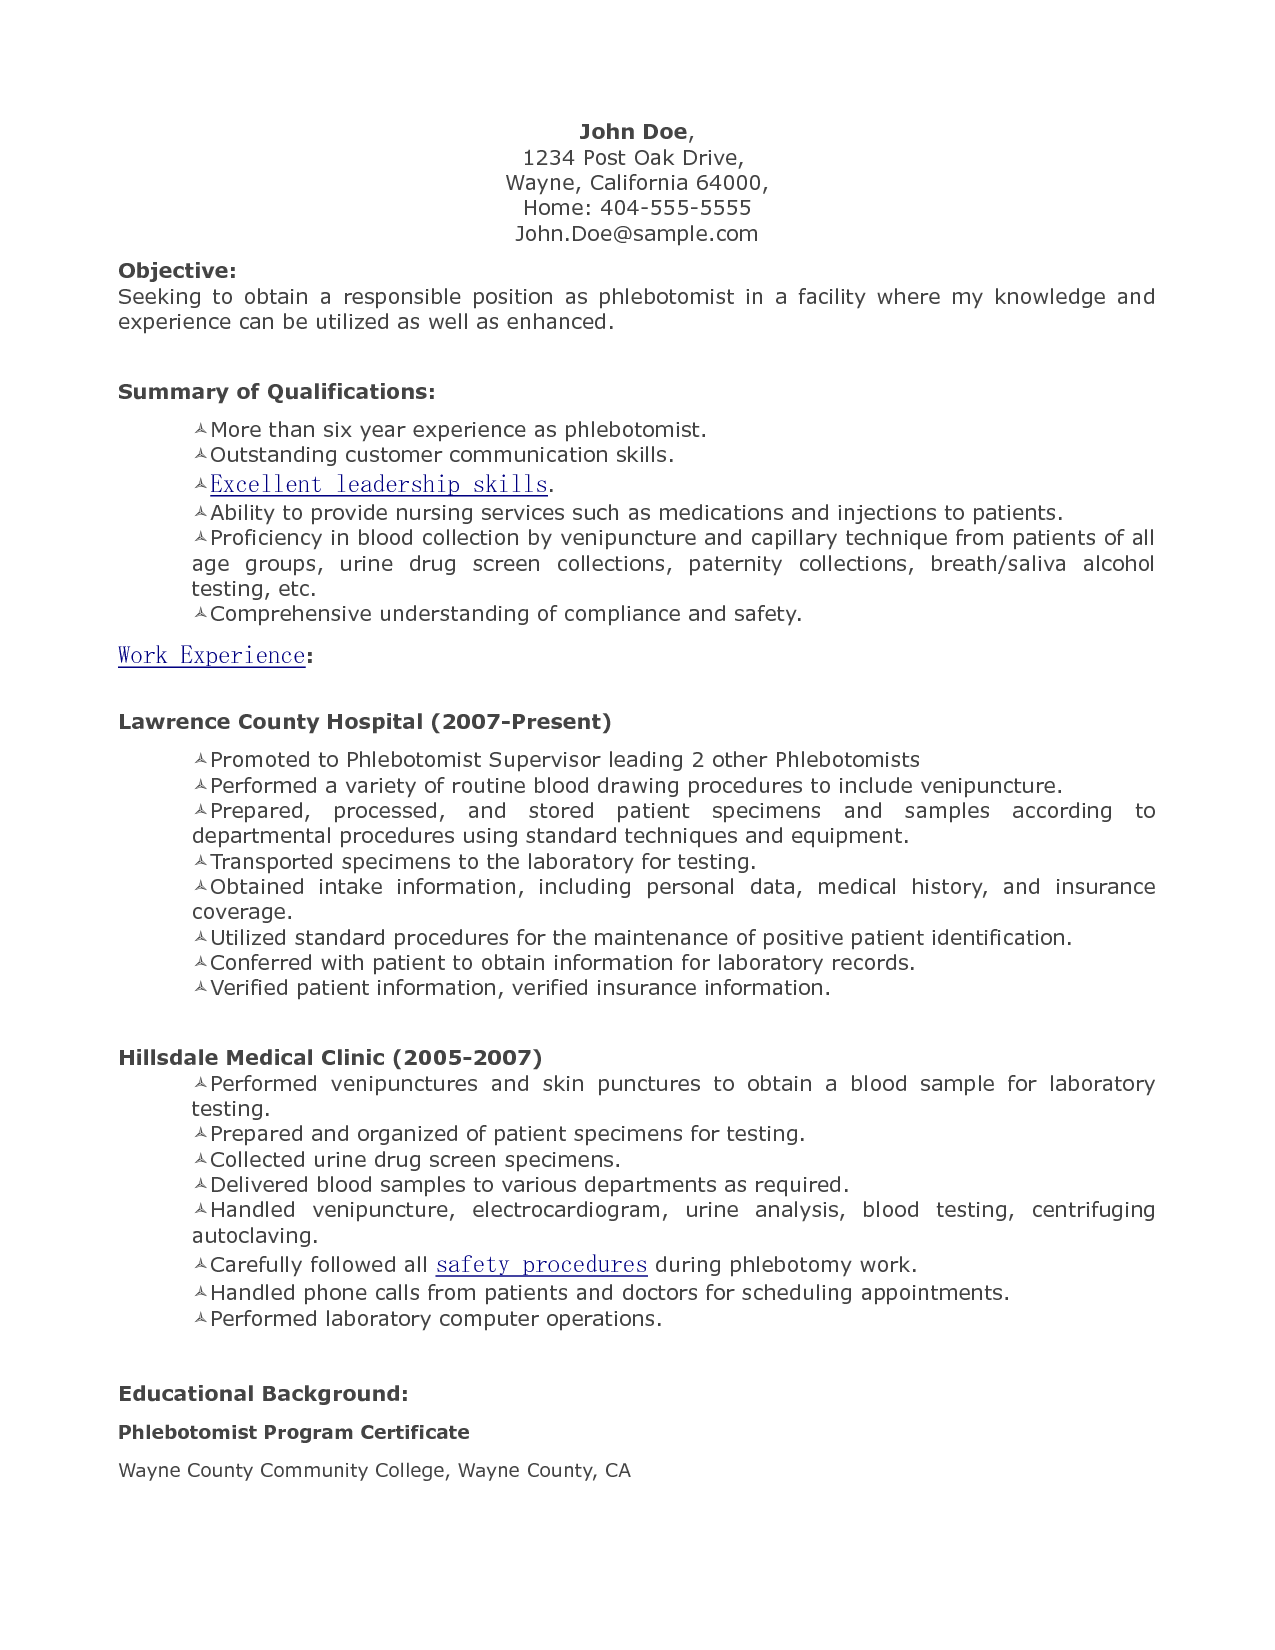 resume objectives for a phlebotomist sample phlebotomist resume articles